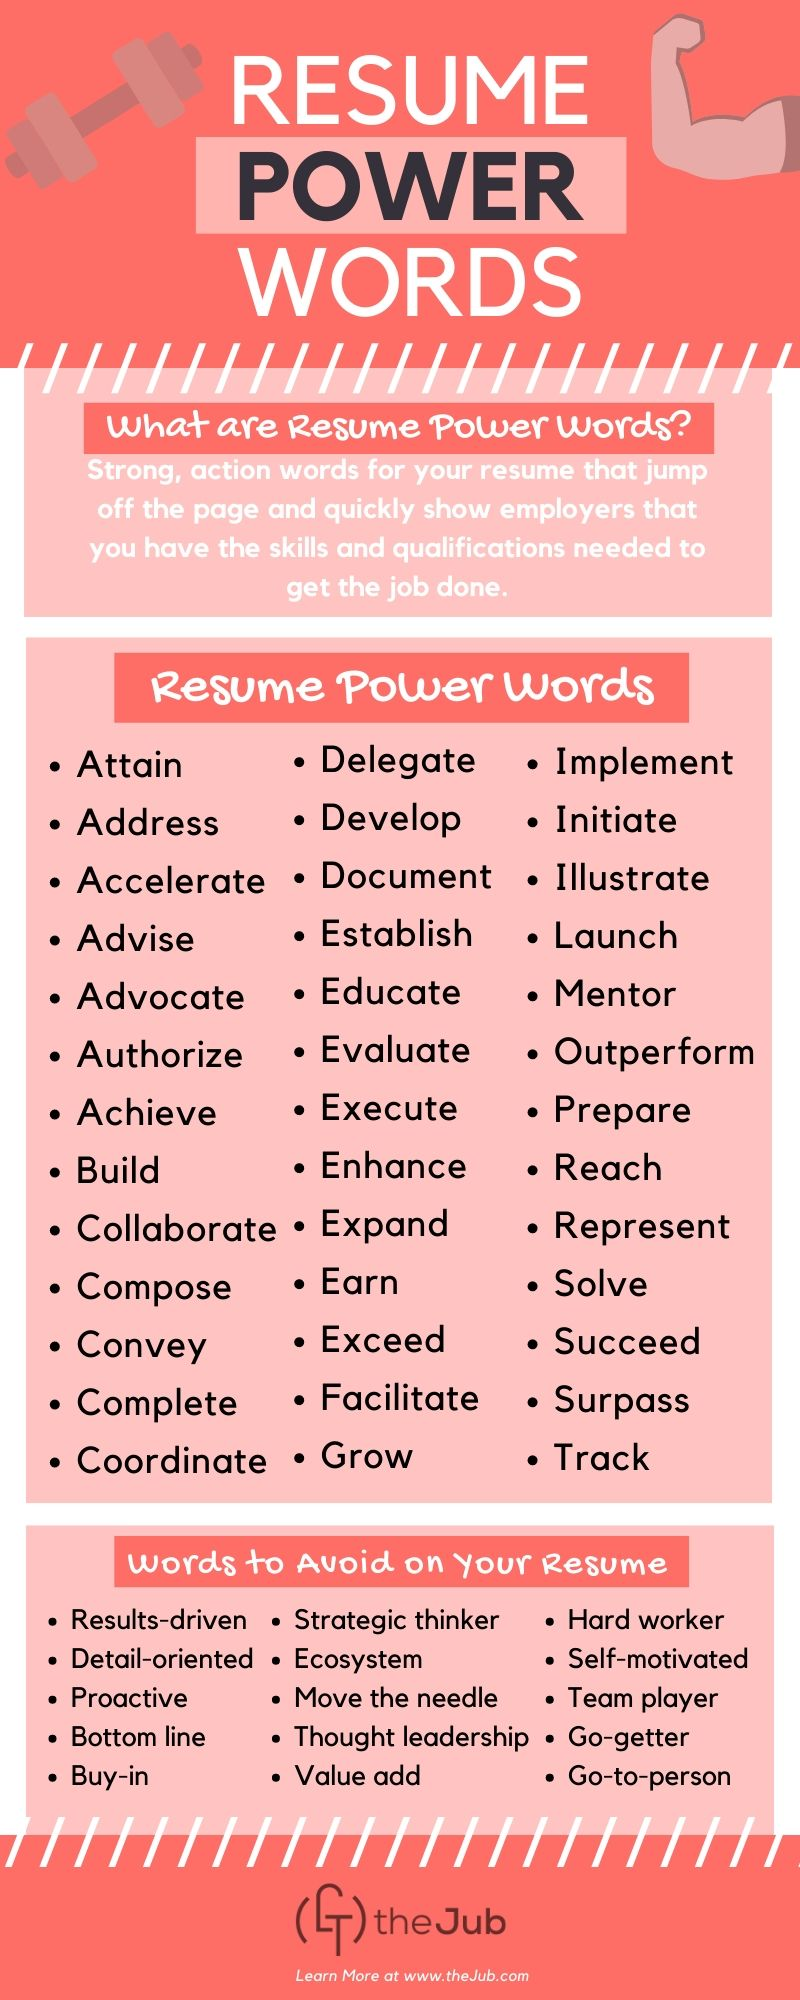 resume words for infographic strong action verbs l2dt chemistry lecturer examples college Resume Strong Action Verbs For Resume